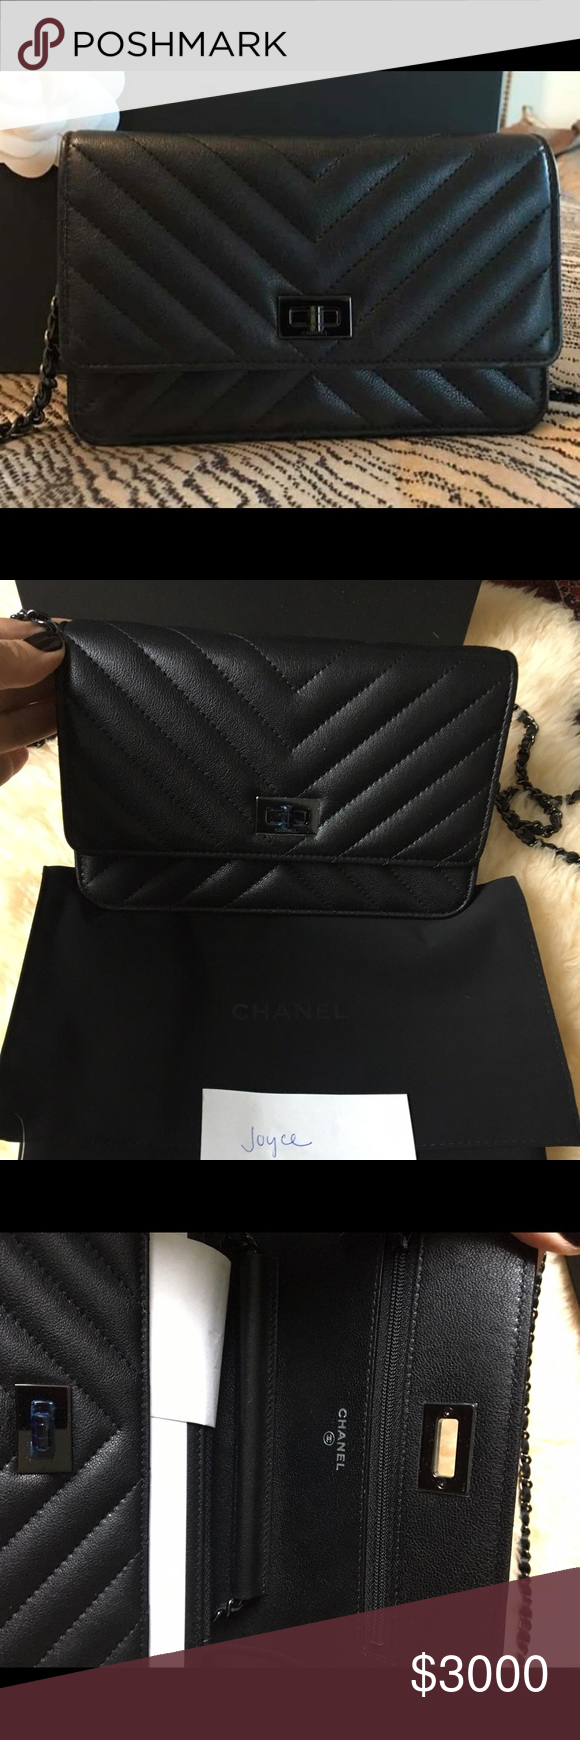 aa0641ba004f SOLD!!! NWT SO BLACK CHANEL 2.55 REISSUE WOC BNWT never used Chanel ...